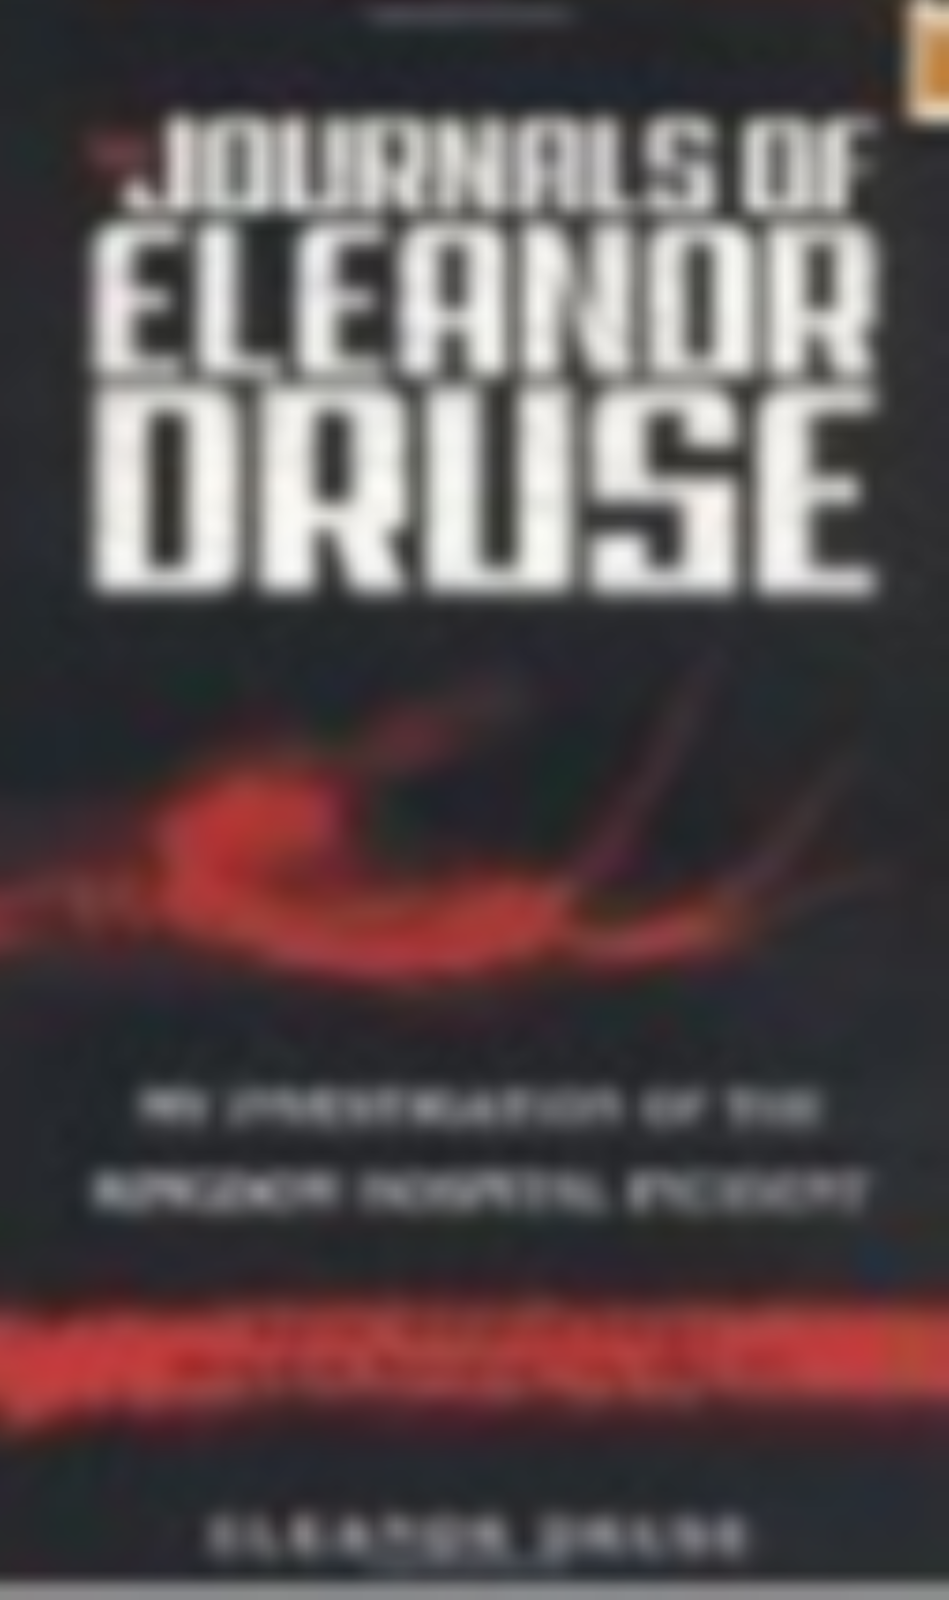 Journals of Eleanor Druse, The: My Investigation of the Kingdom Hospital